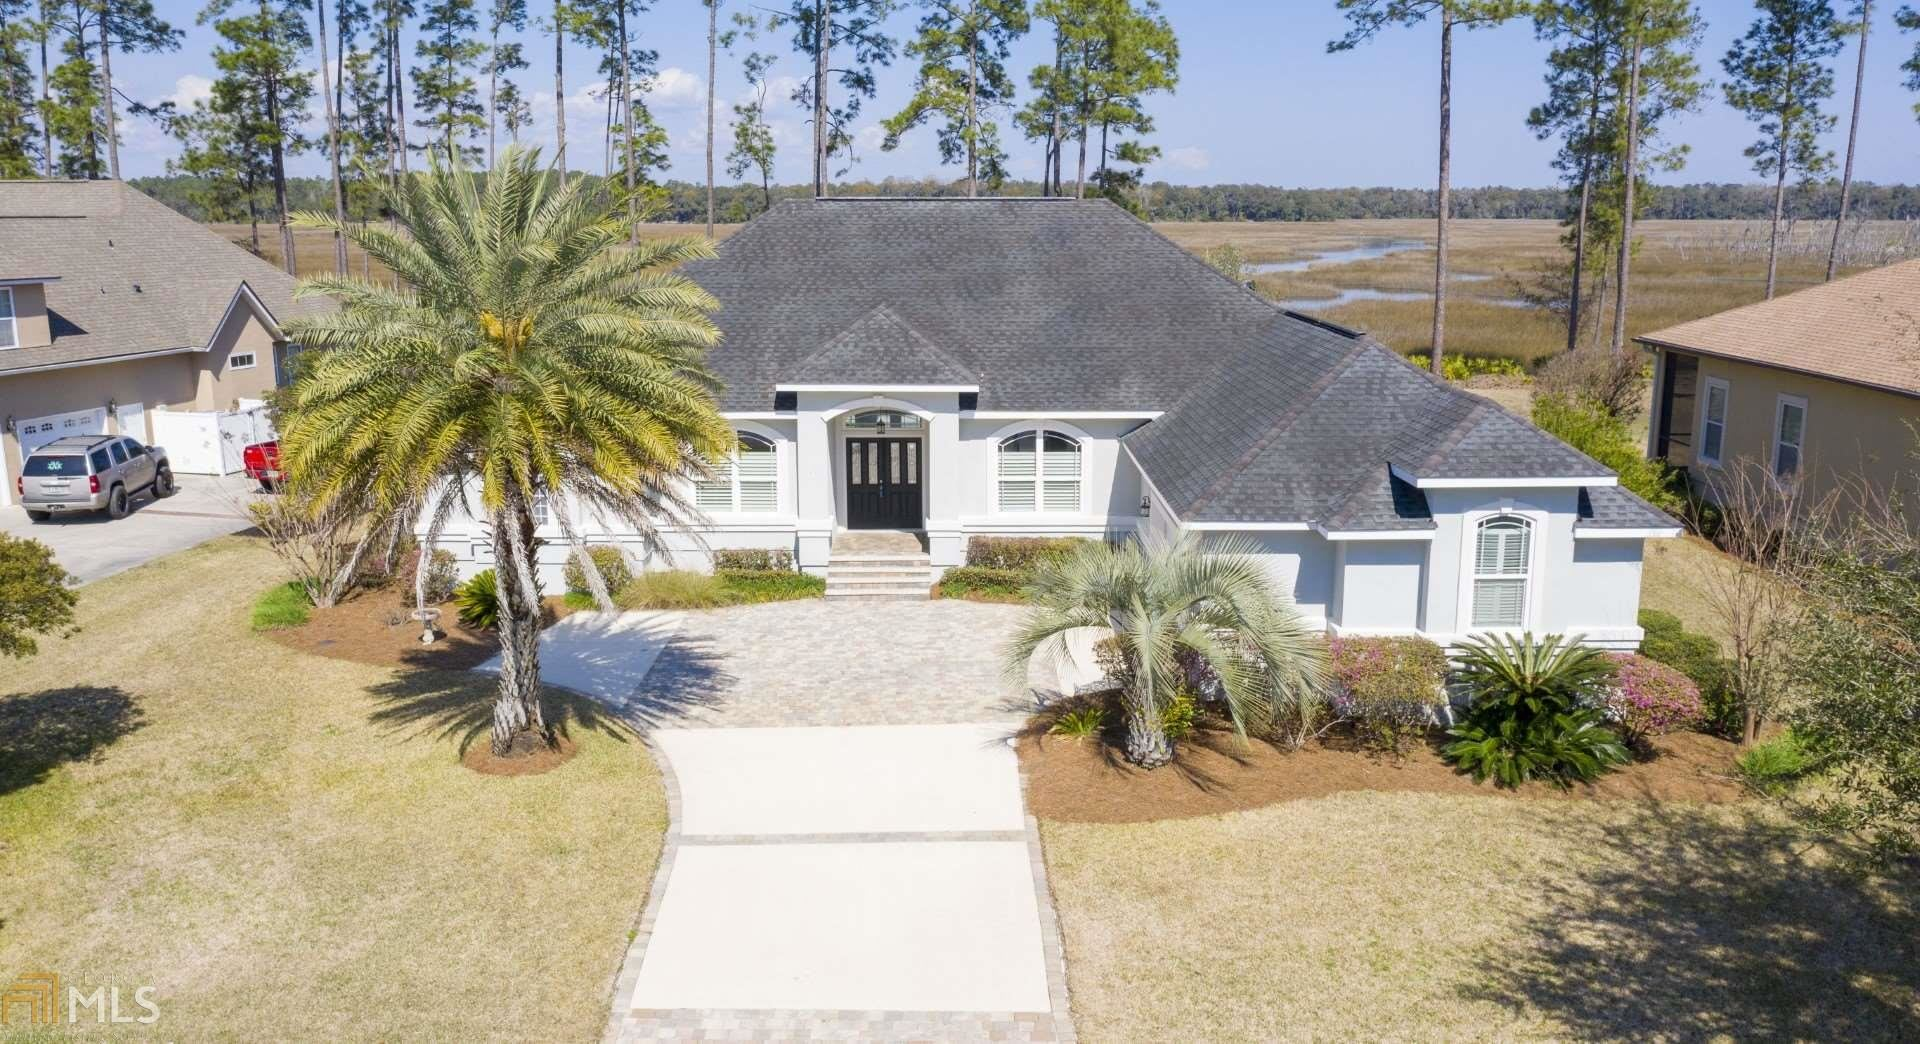 Photo of 103 Bateau Dr, St. Marys, GA 31558 (MLS # 8911866)